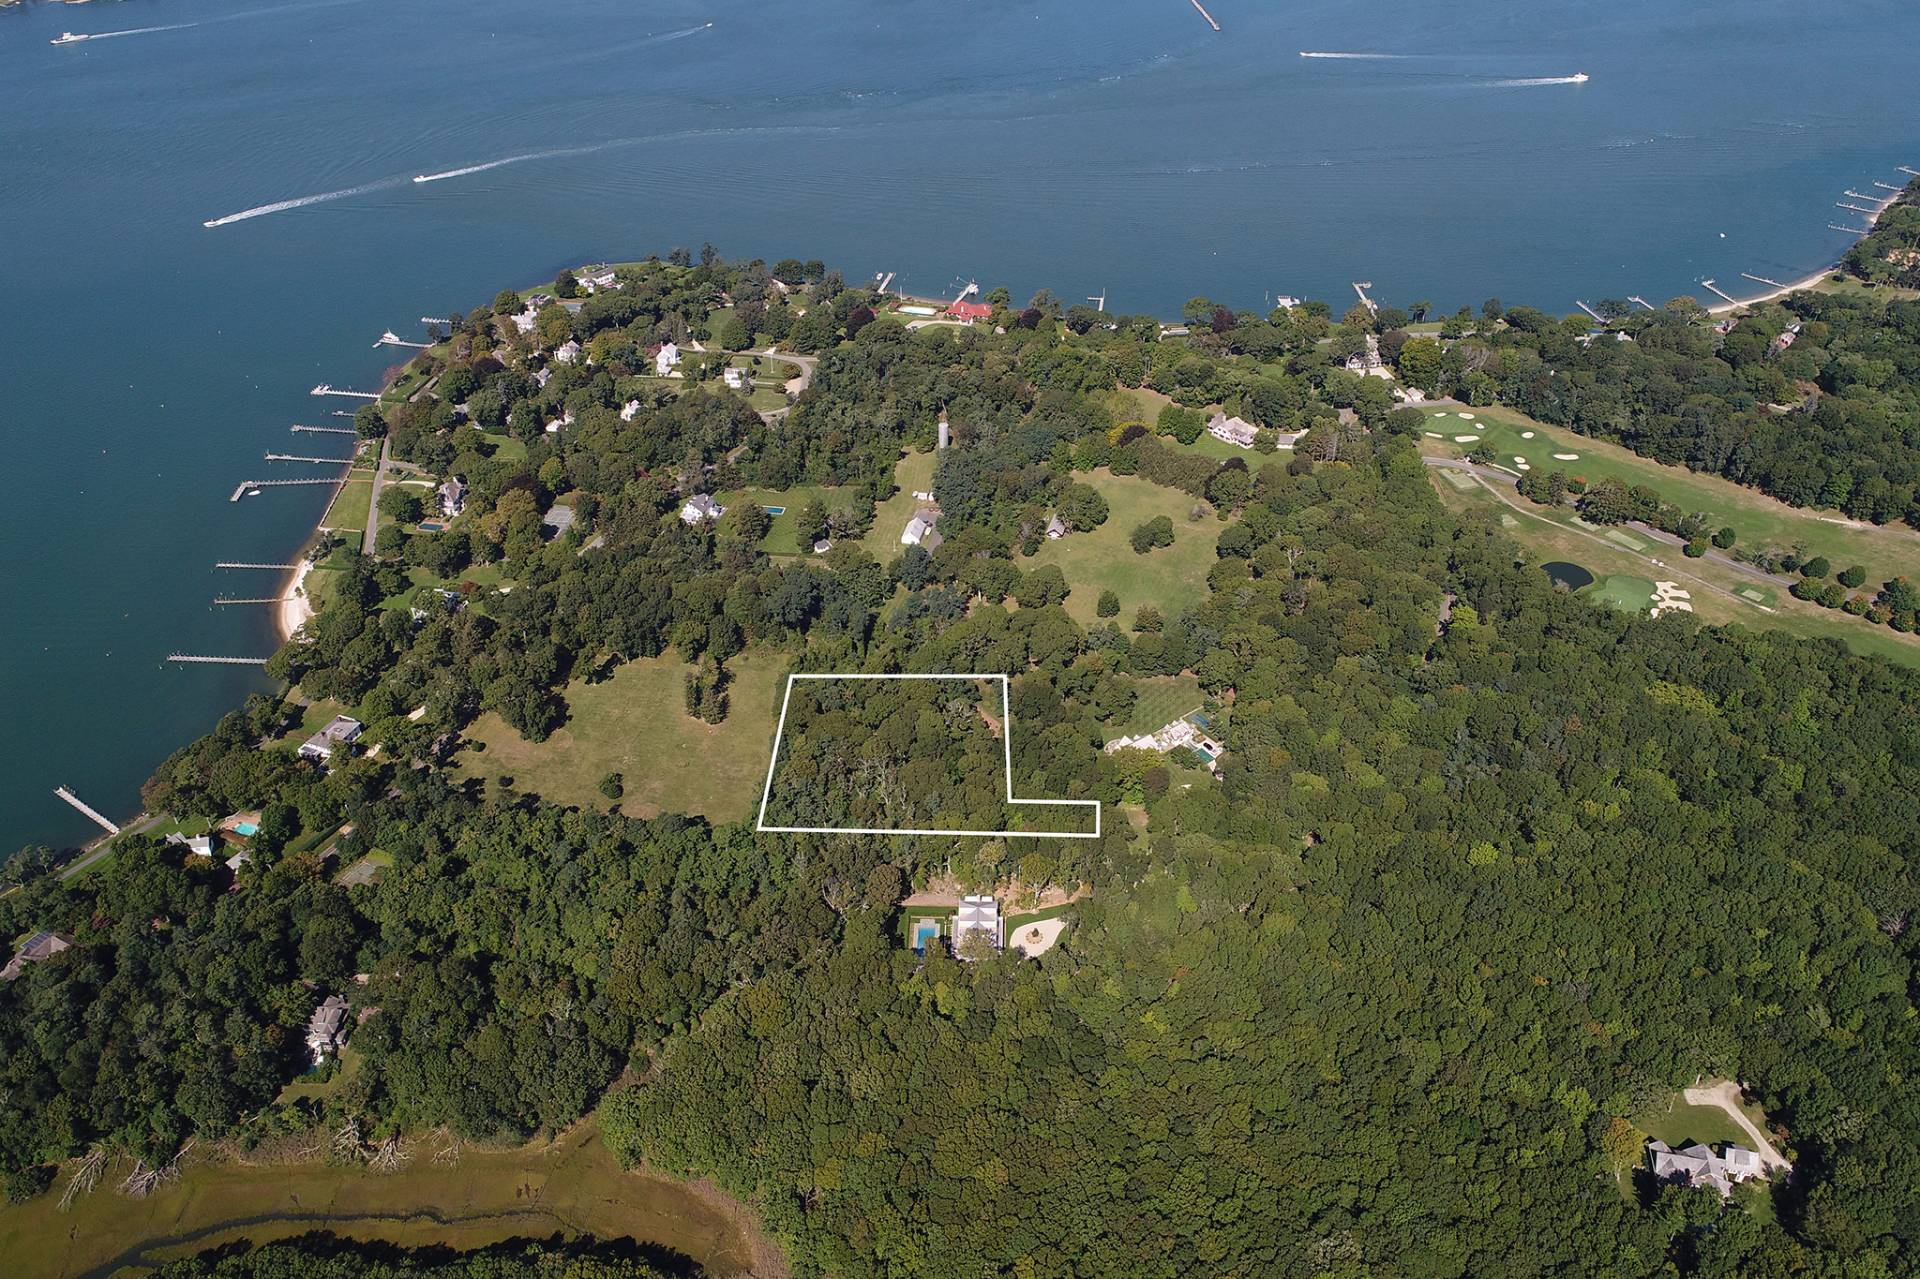 Land for Sale at Shelter Island Pristine Estate Acreage 3 Dering Woods Lane, Shelter Island, New York